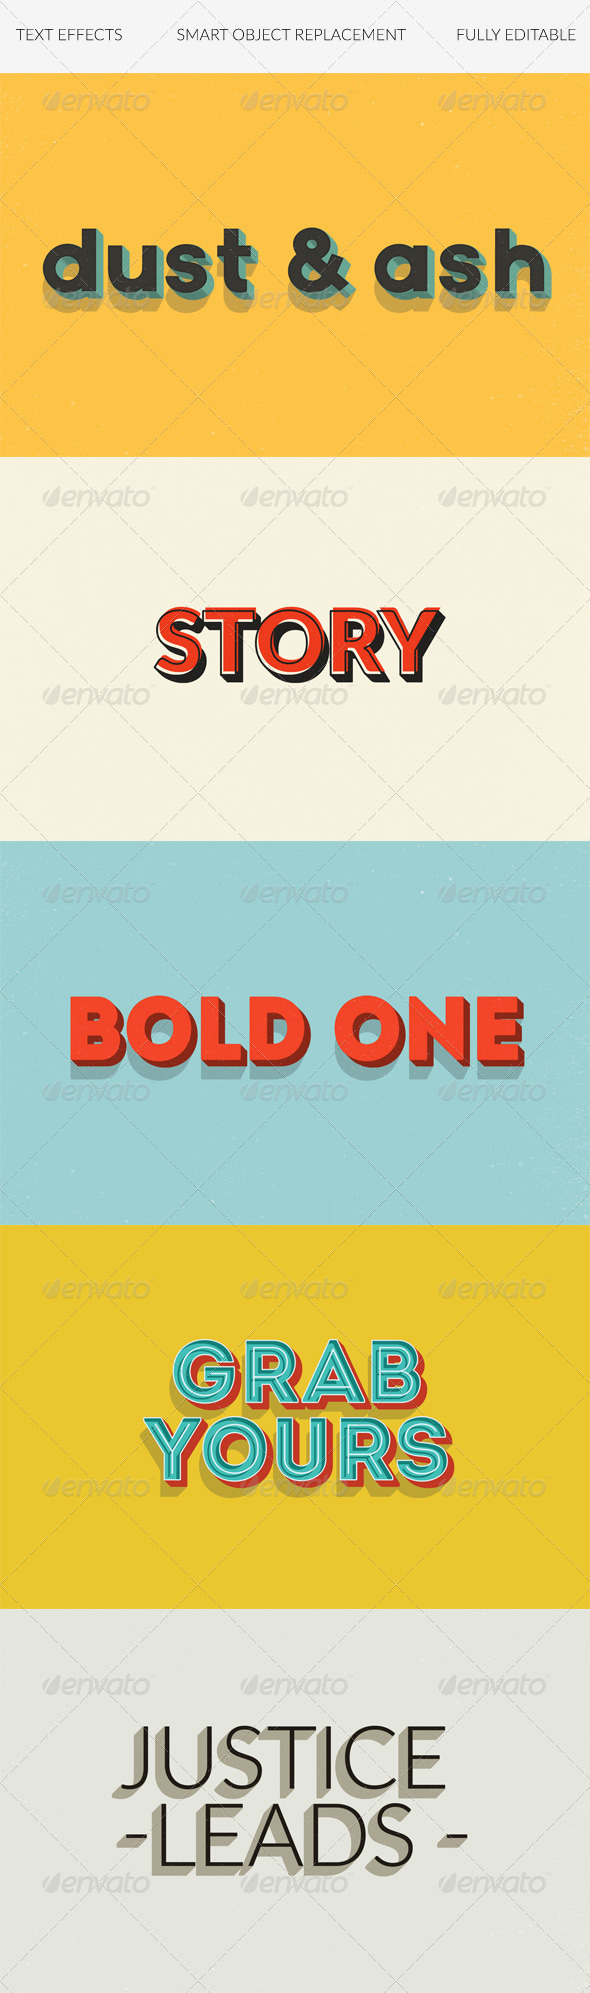 GraphicRiver Text Effects Vintage 3D Retro vol 3 8537113